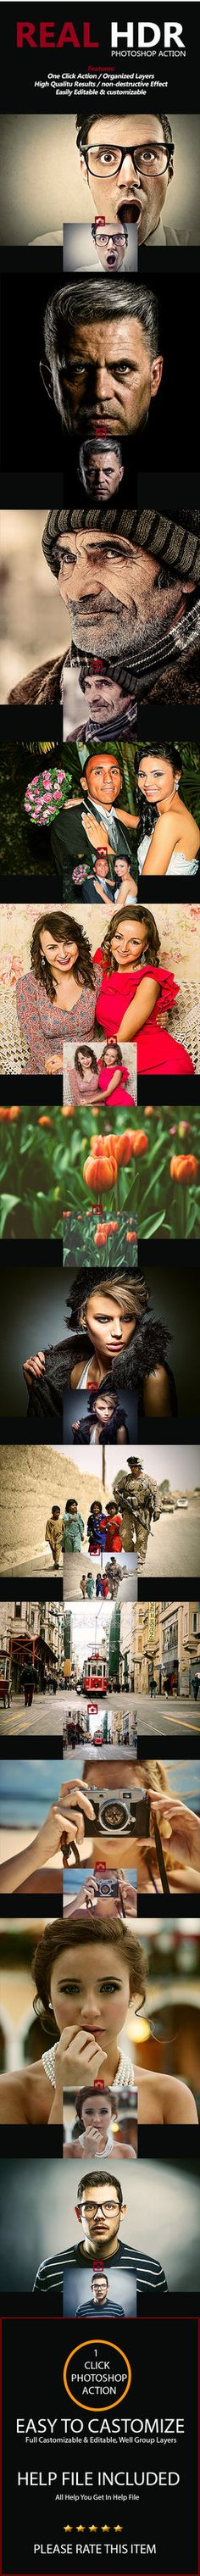 DOWNLOAD:goo.gl/UbuQvF photoshop action. .The action has been tested and working on Photoshop (English versions)CS3,CS4,CS5,CS6,CC. .I recommend using the action on photo's with high resoluti...